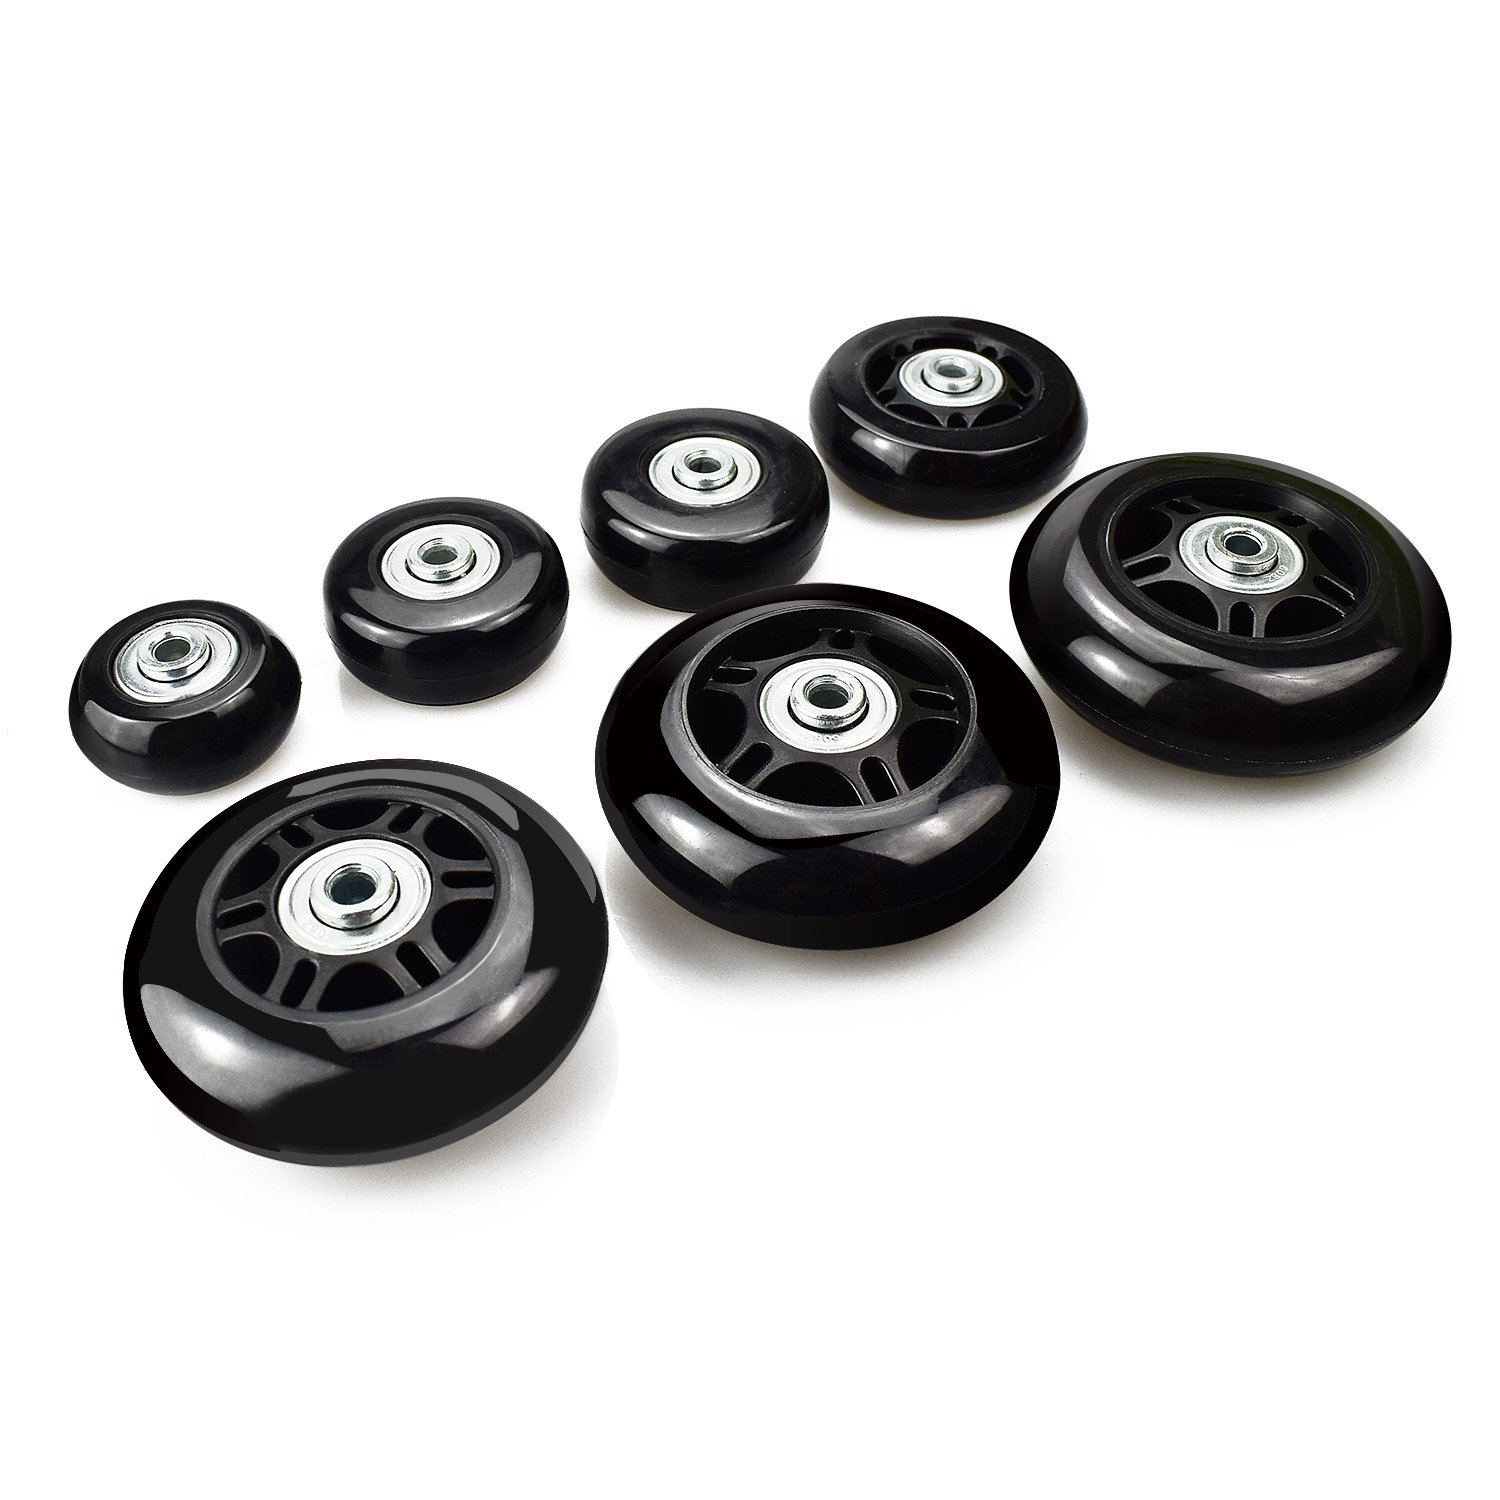 B.LeekS Luggage Suitcase Wheels with ABEC 608zz Bearings, Inline Outdoor Skate Replacement Wheels with Multiple Sizes, One Set of (2) Wheels76mm × 24mm